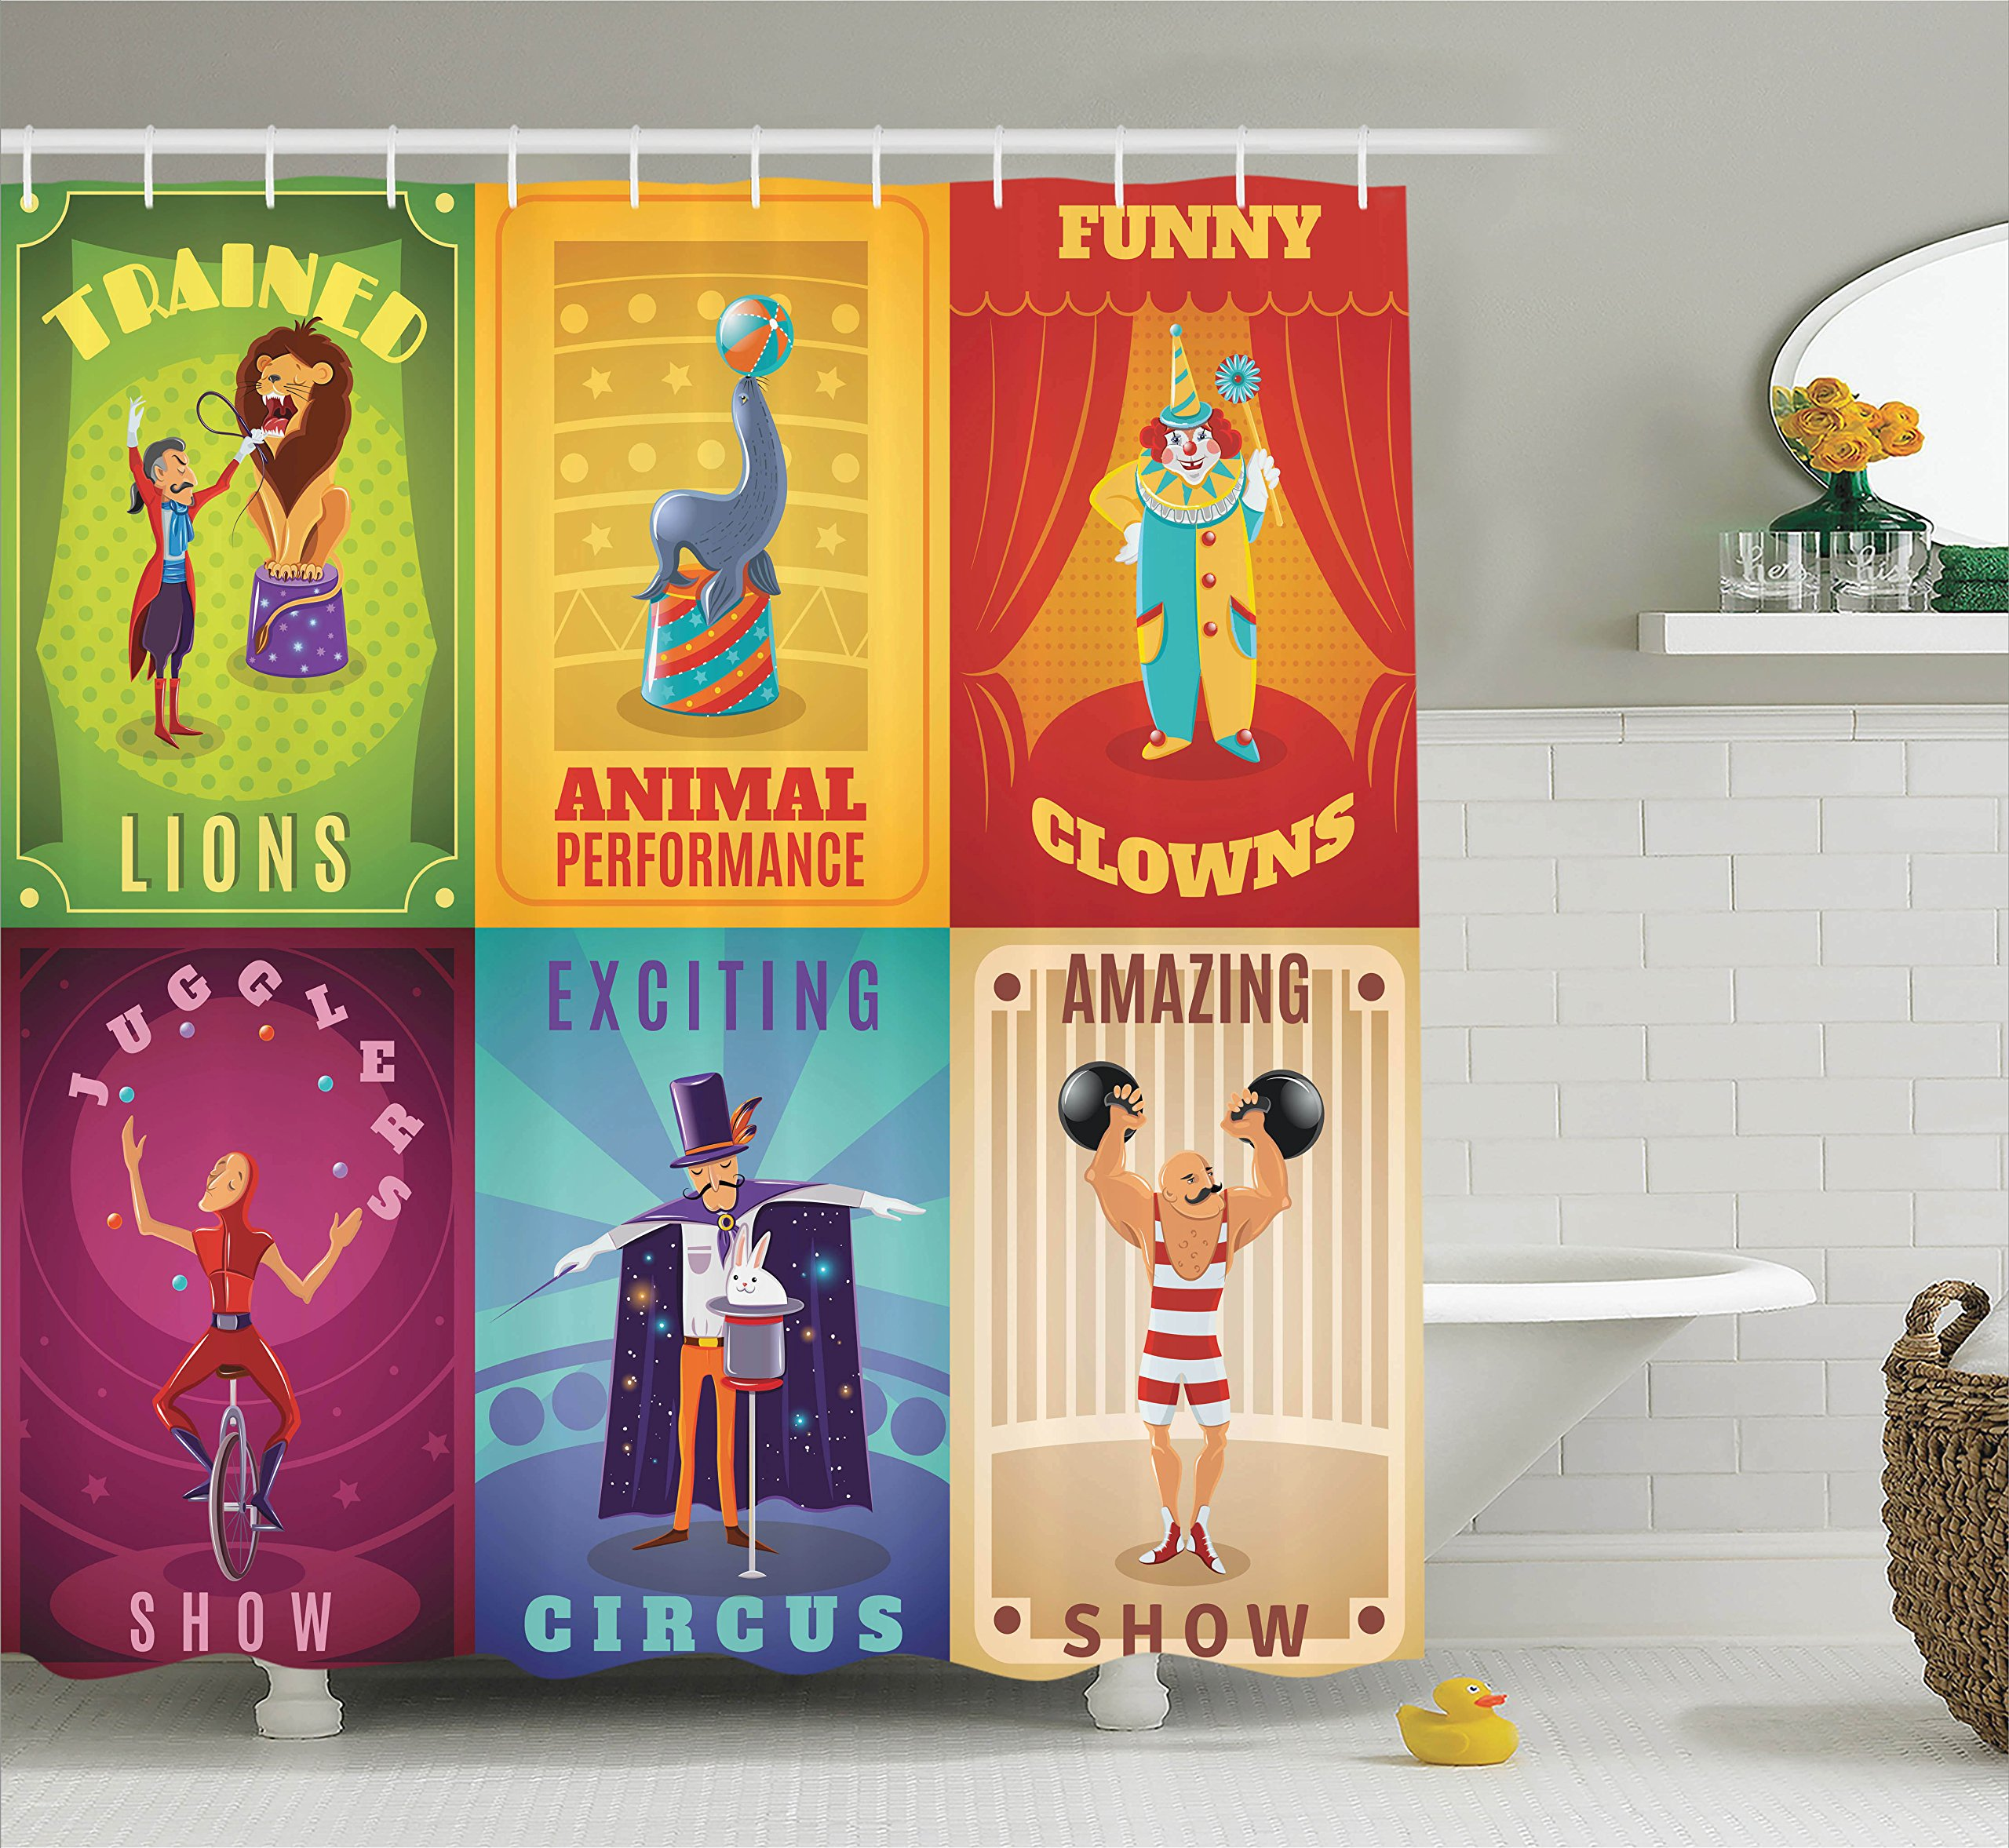 Ambesonne Circus Decor Shower Curtain Set, Circus Characters with Trained Animals The Strong Man Trapeze Artist Retro Show Design, Bathroom Accessories, 69W X 70L Inches, Multi by Ambesonne